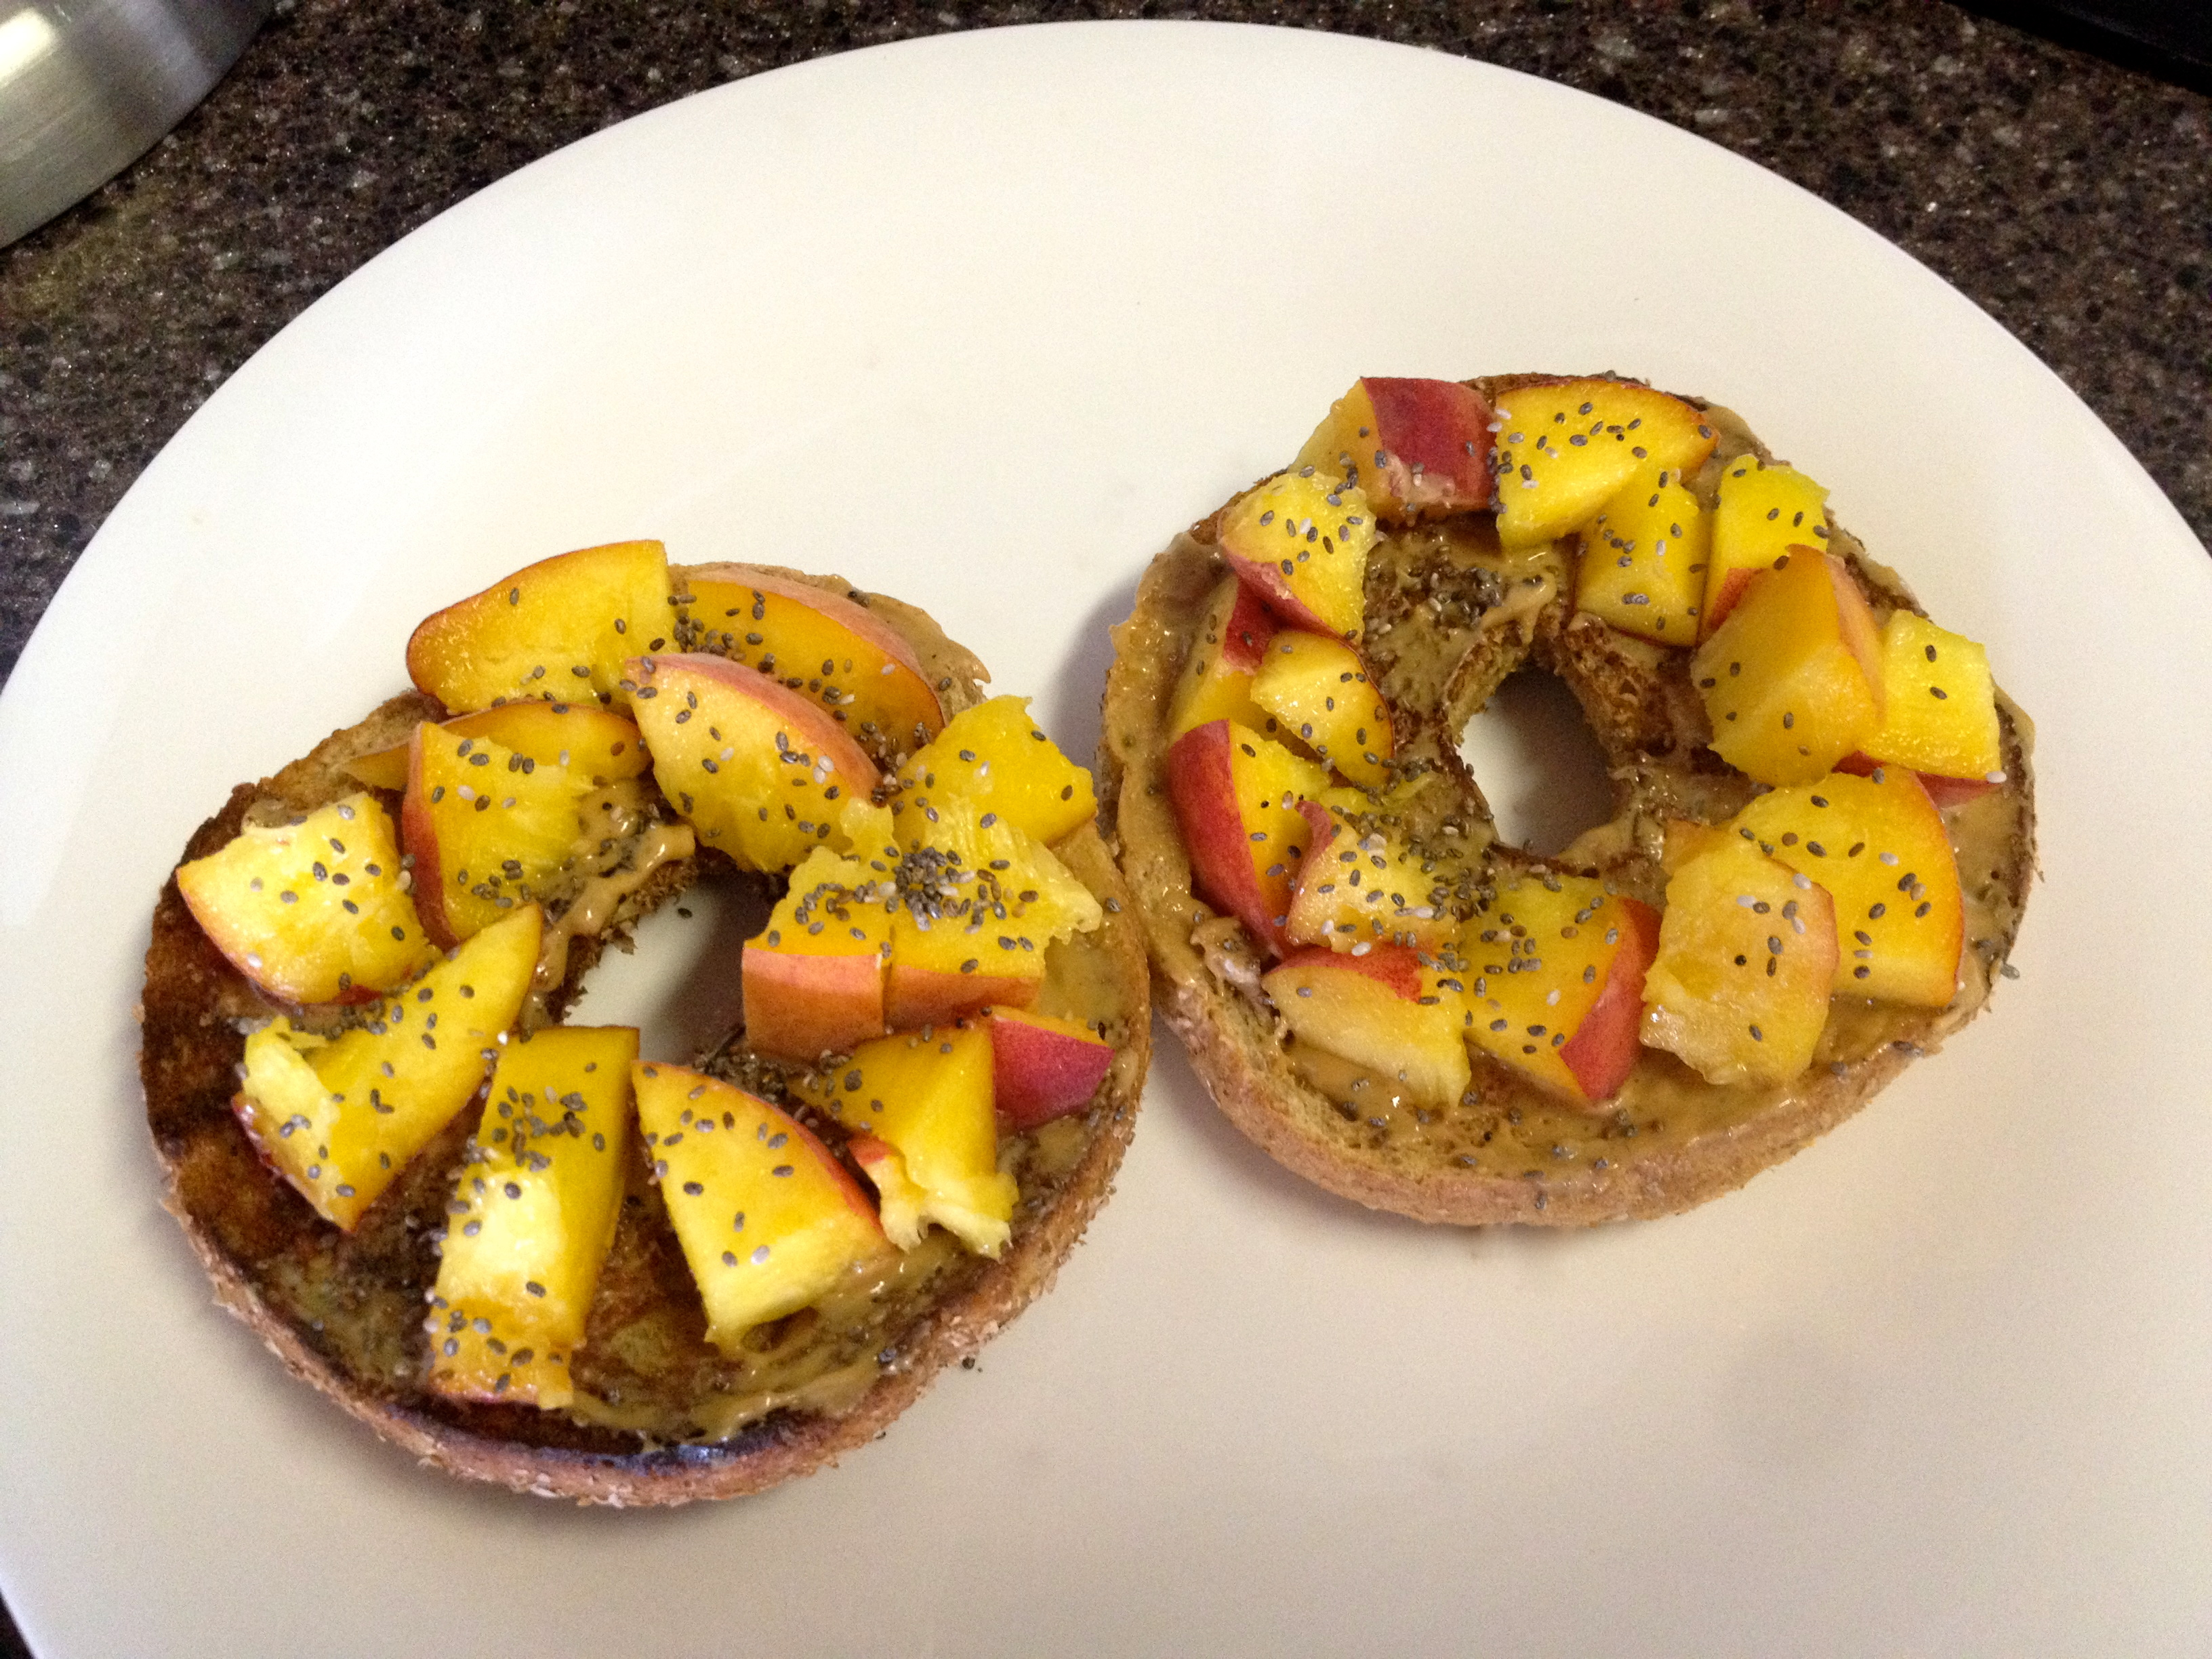 Peach and Peanut Butter on wheat bagel